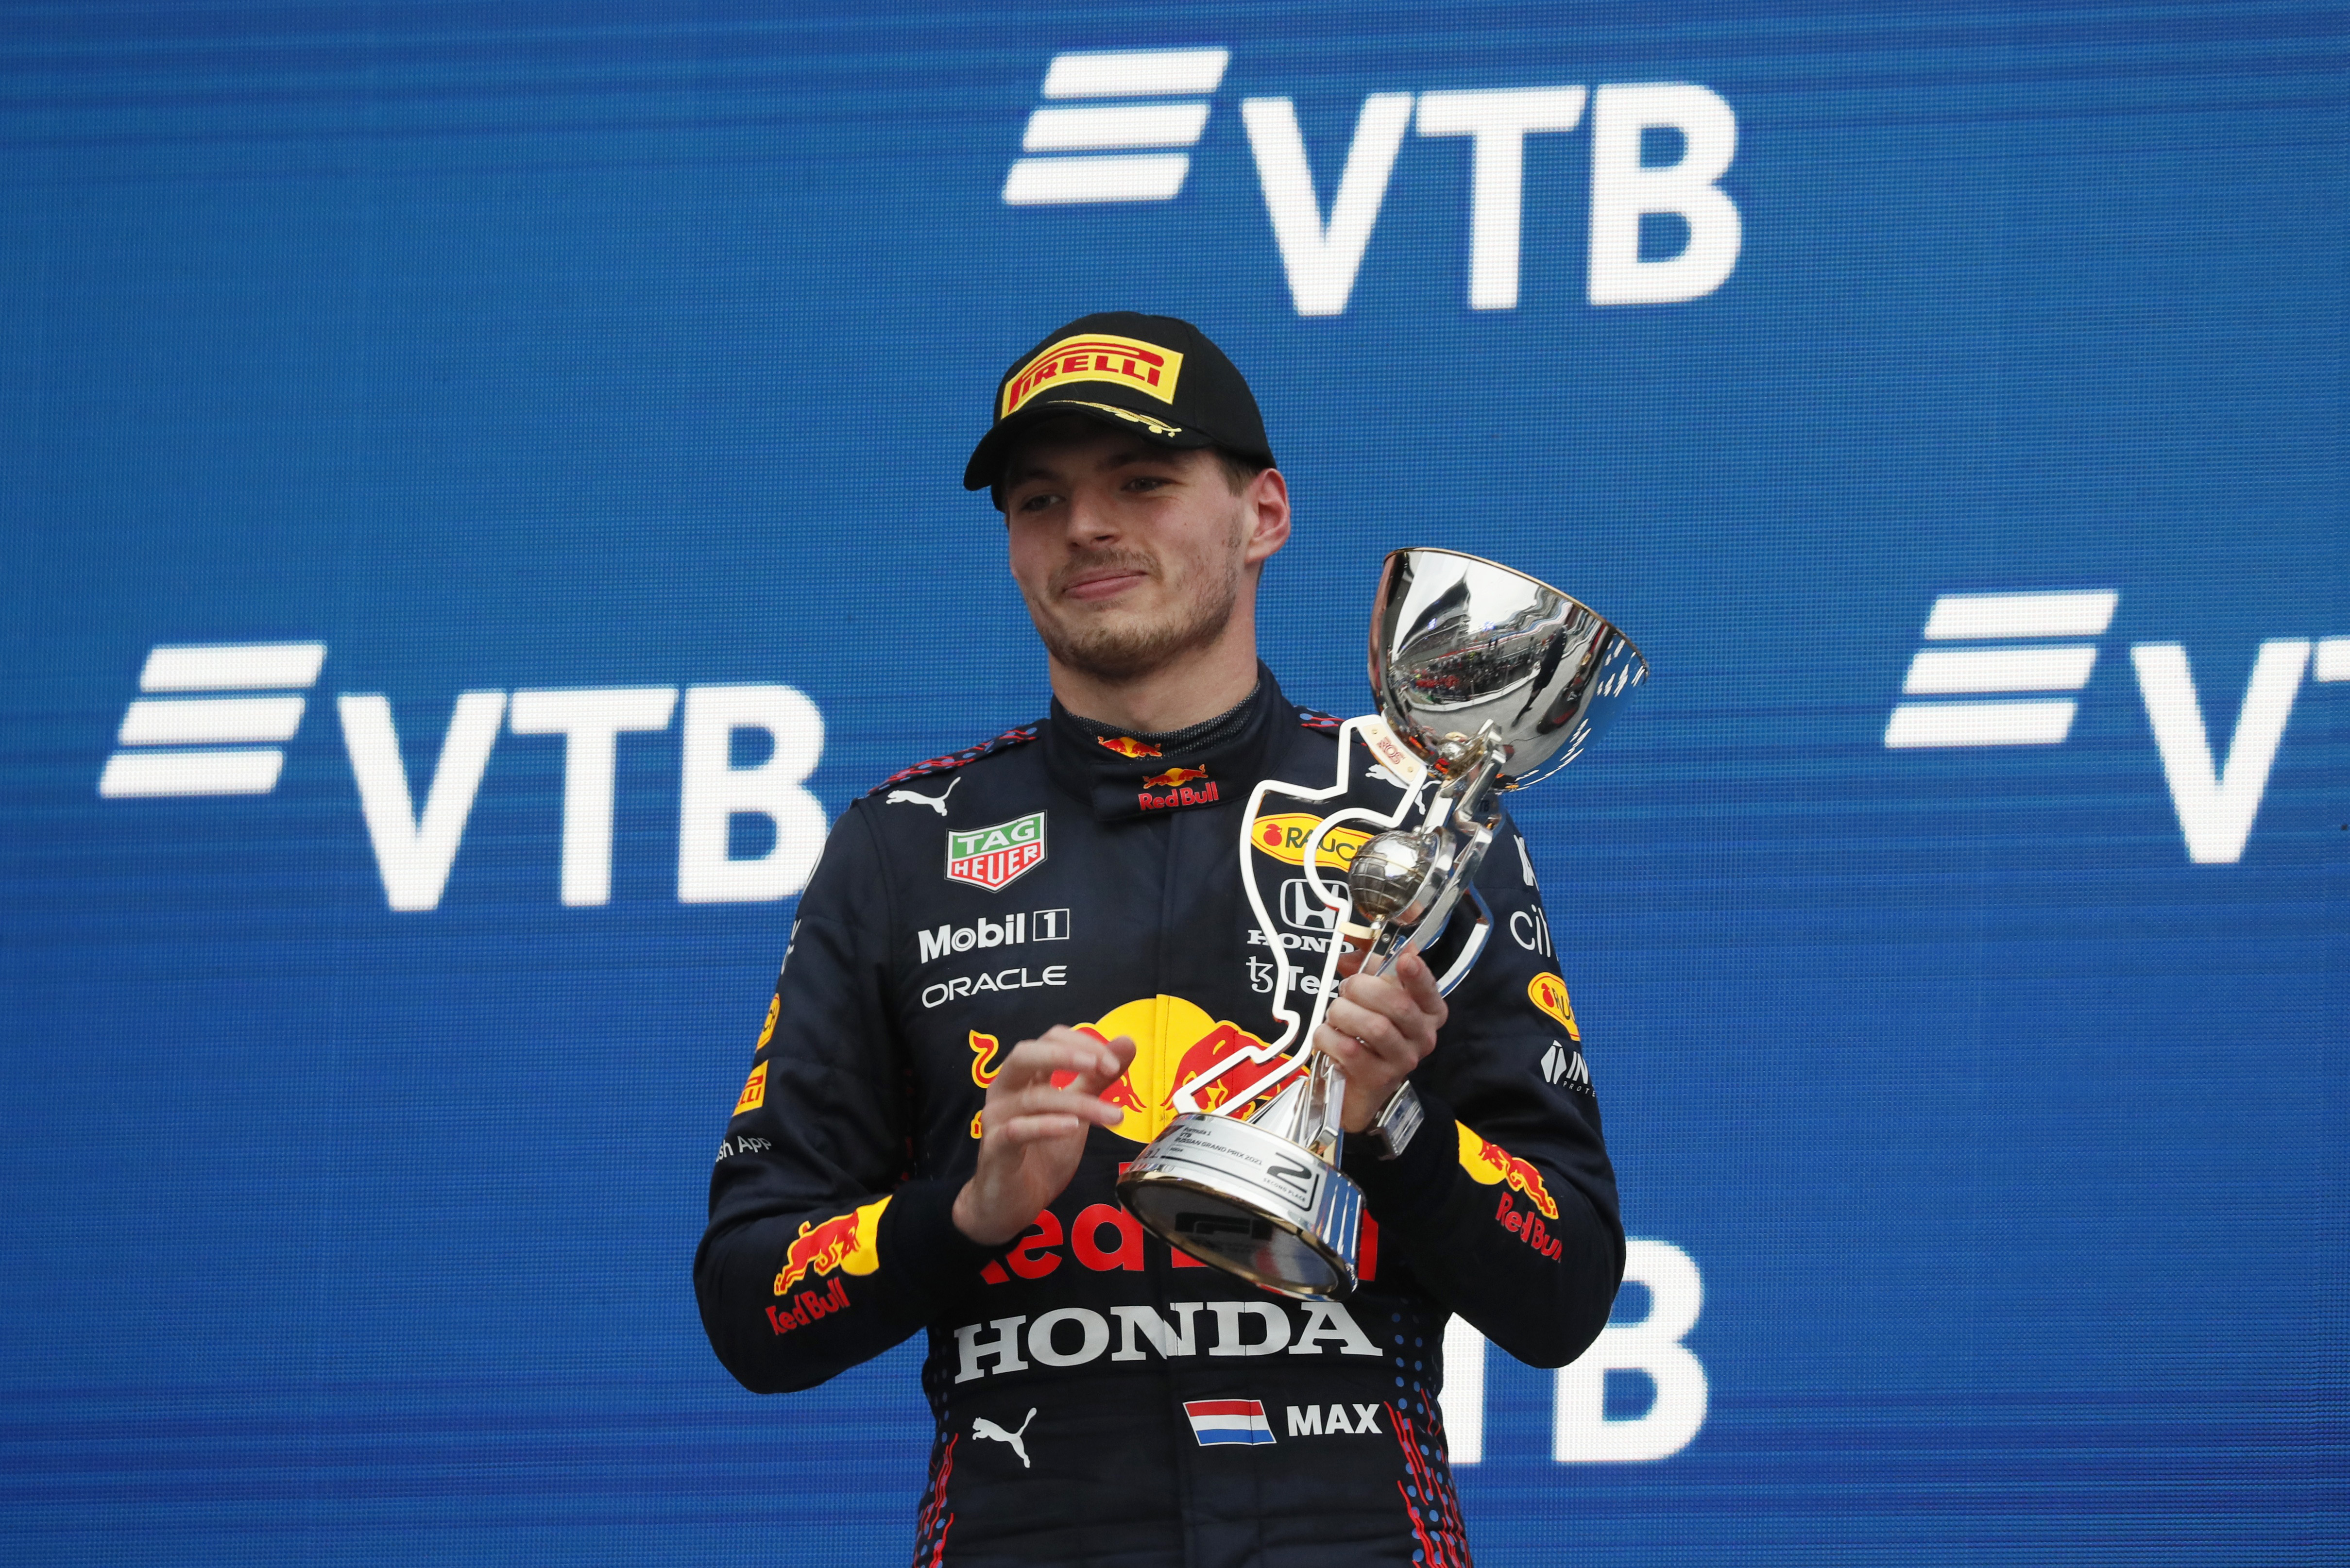 Formula One F1 - Russian Grand Prix - Sochi Autodrom, Sochi, Russia - September 26, 2021 Red Bull's Max Verstappen celebrates on the podium with the trophy after finishing second in the race Pool via REUTERS/Yuri Kochetkov